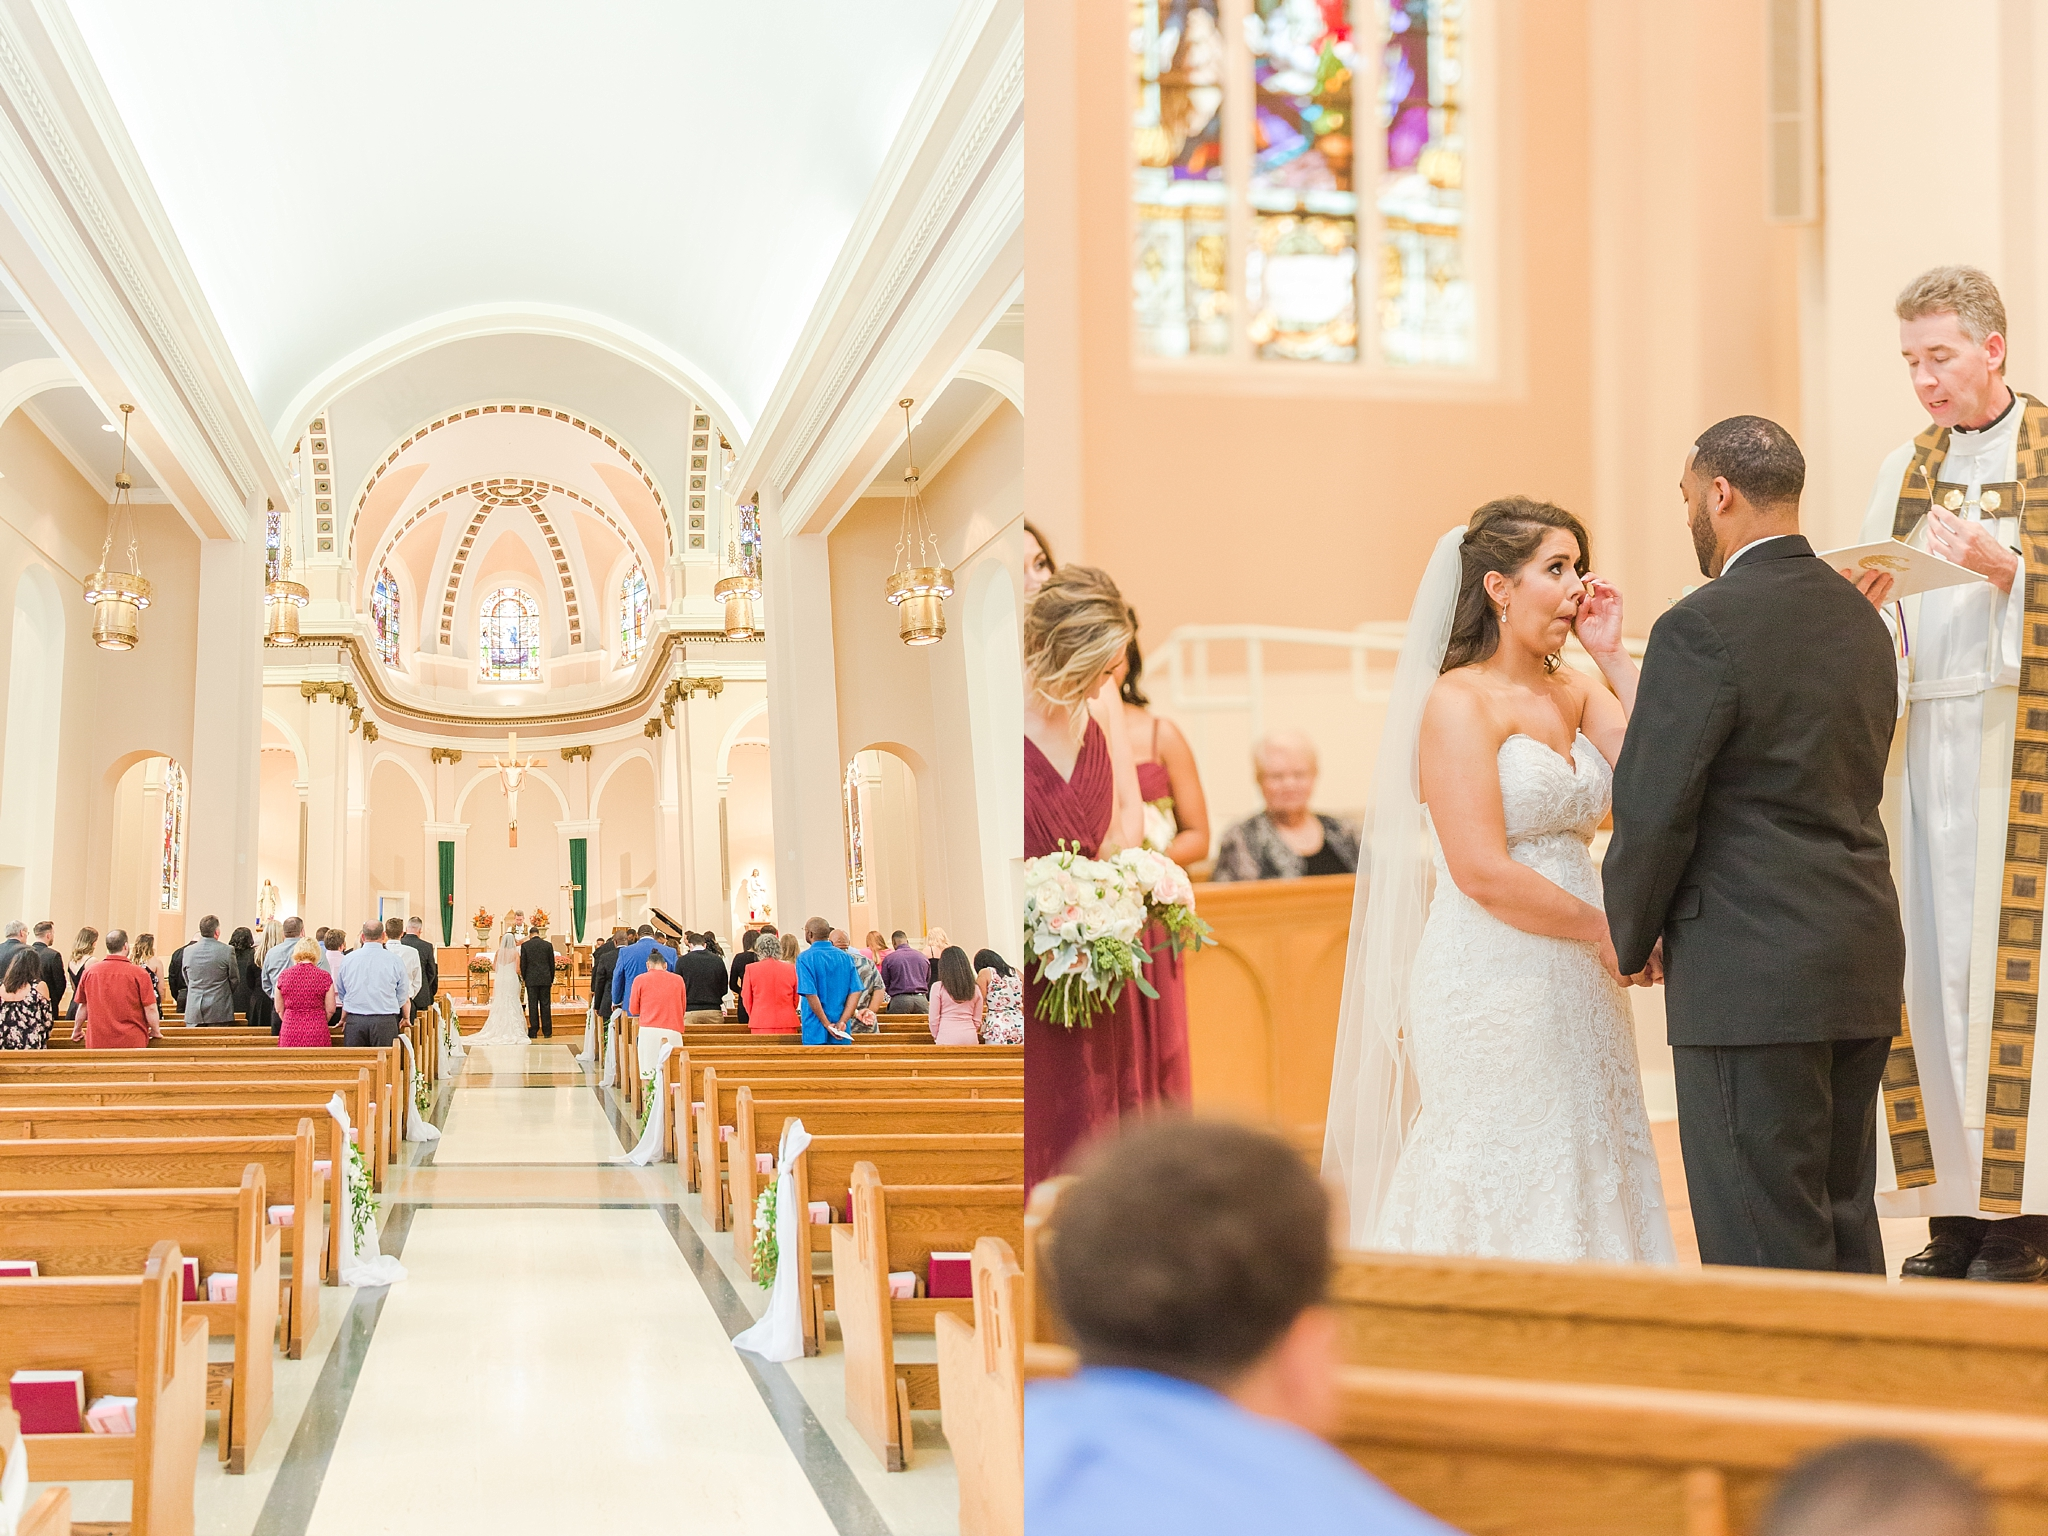 romantic-artful-candid-wedding-photos-in-detroit-lansing-ann-arbor-northern-michigan-and-chicago-by-courtney-carolyn-photography_0047.jpg